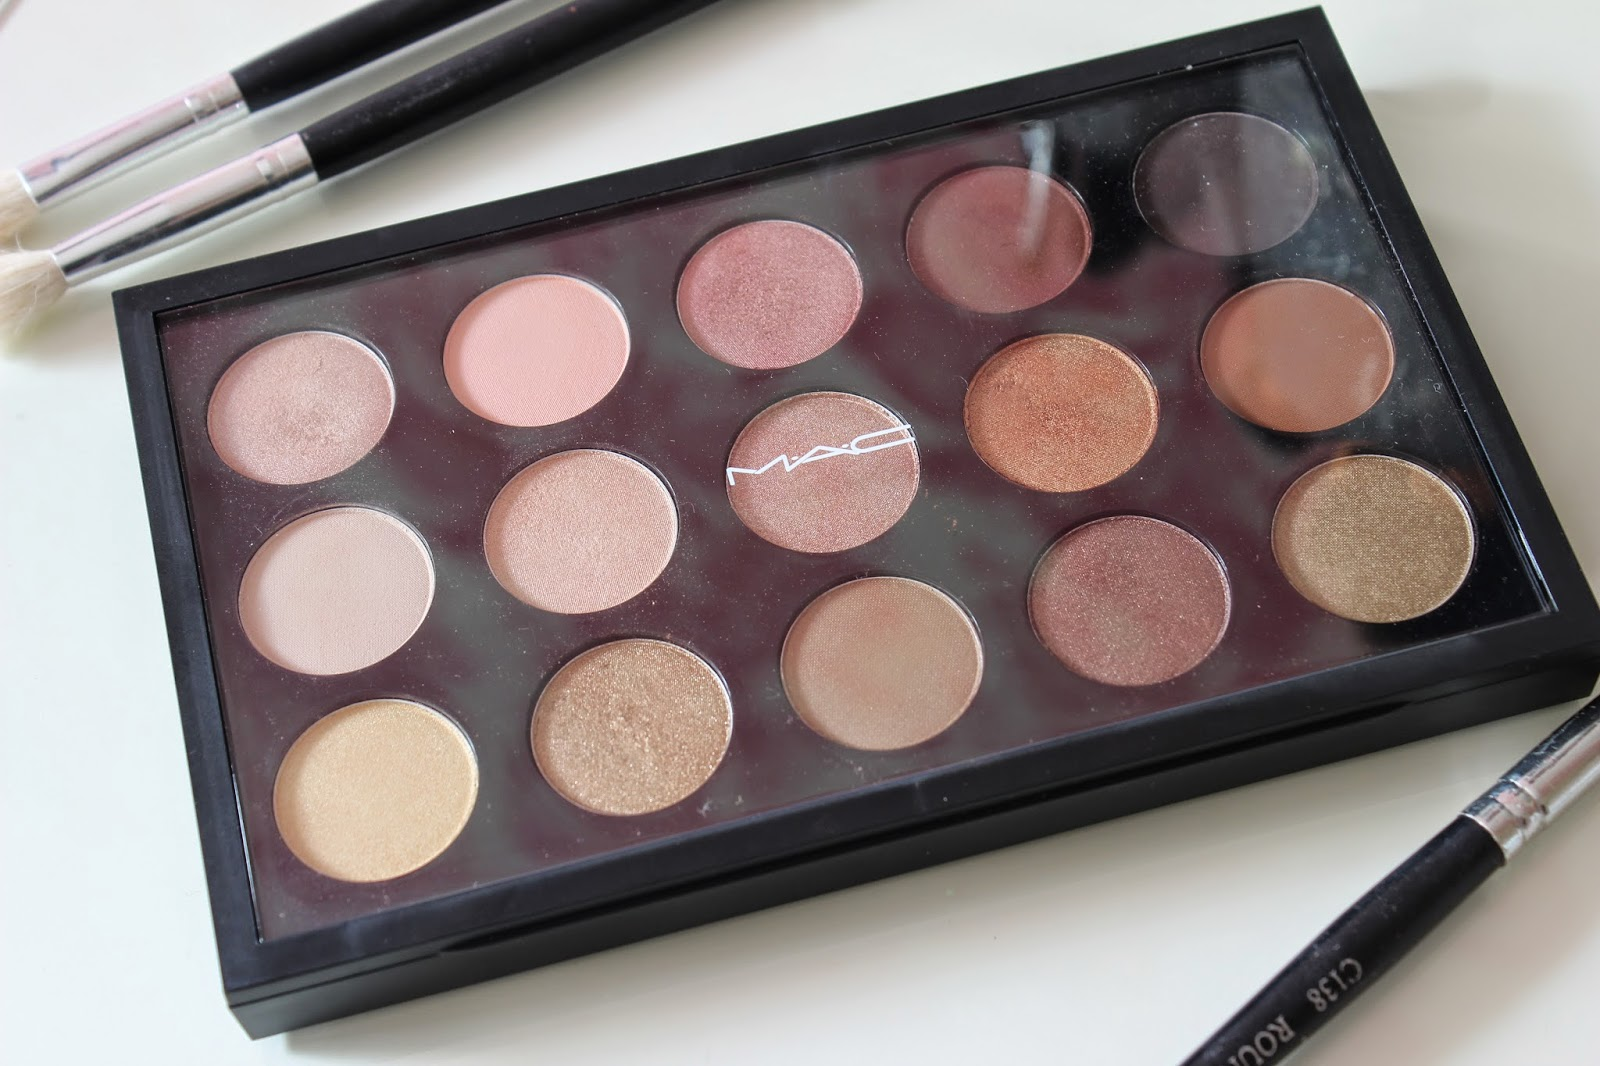 Mac eye shadow x15 warm neutral palette review swatches mac eye shadow x15 warm neutral palette review swatches altavistaventures Images